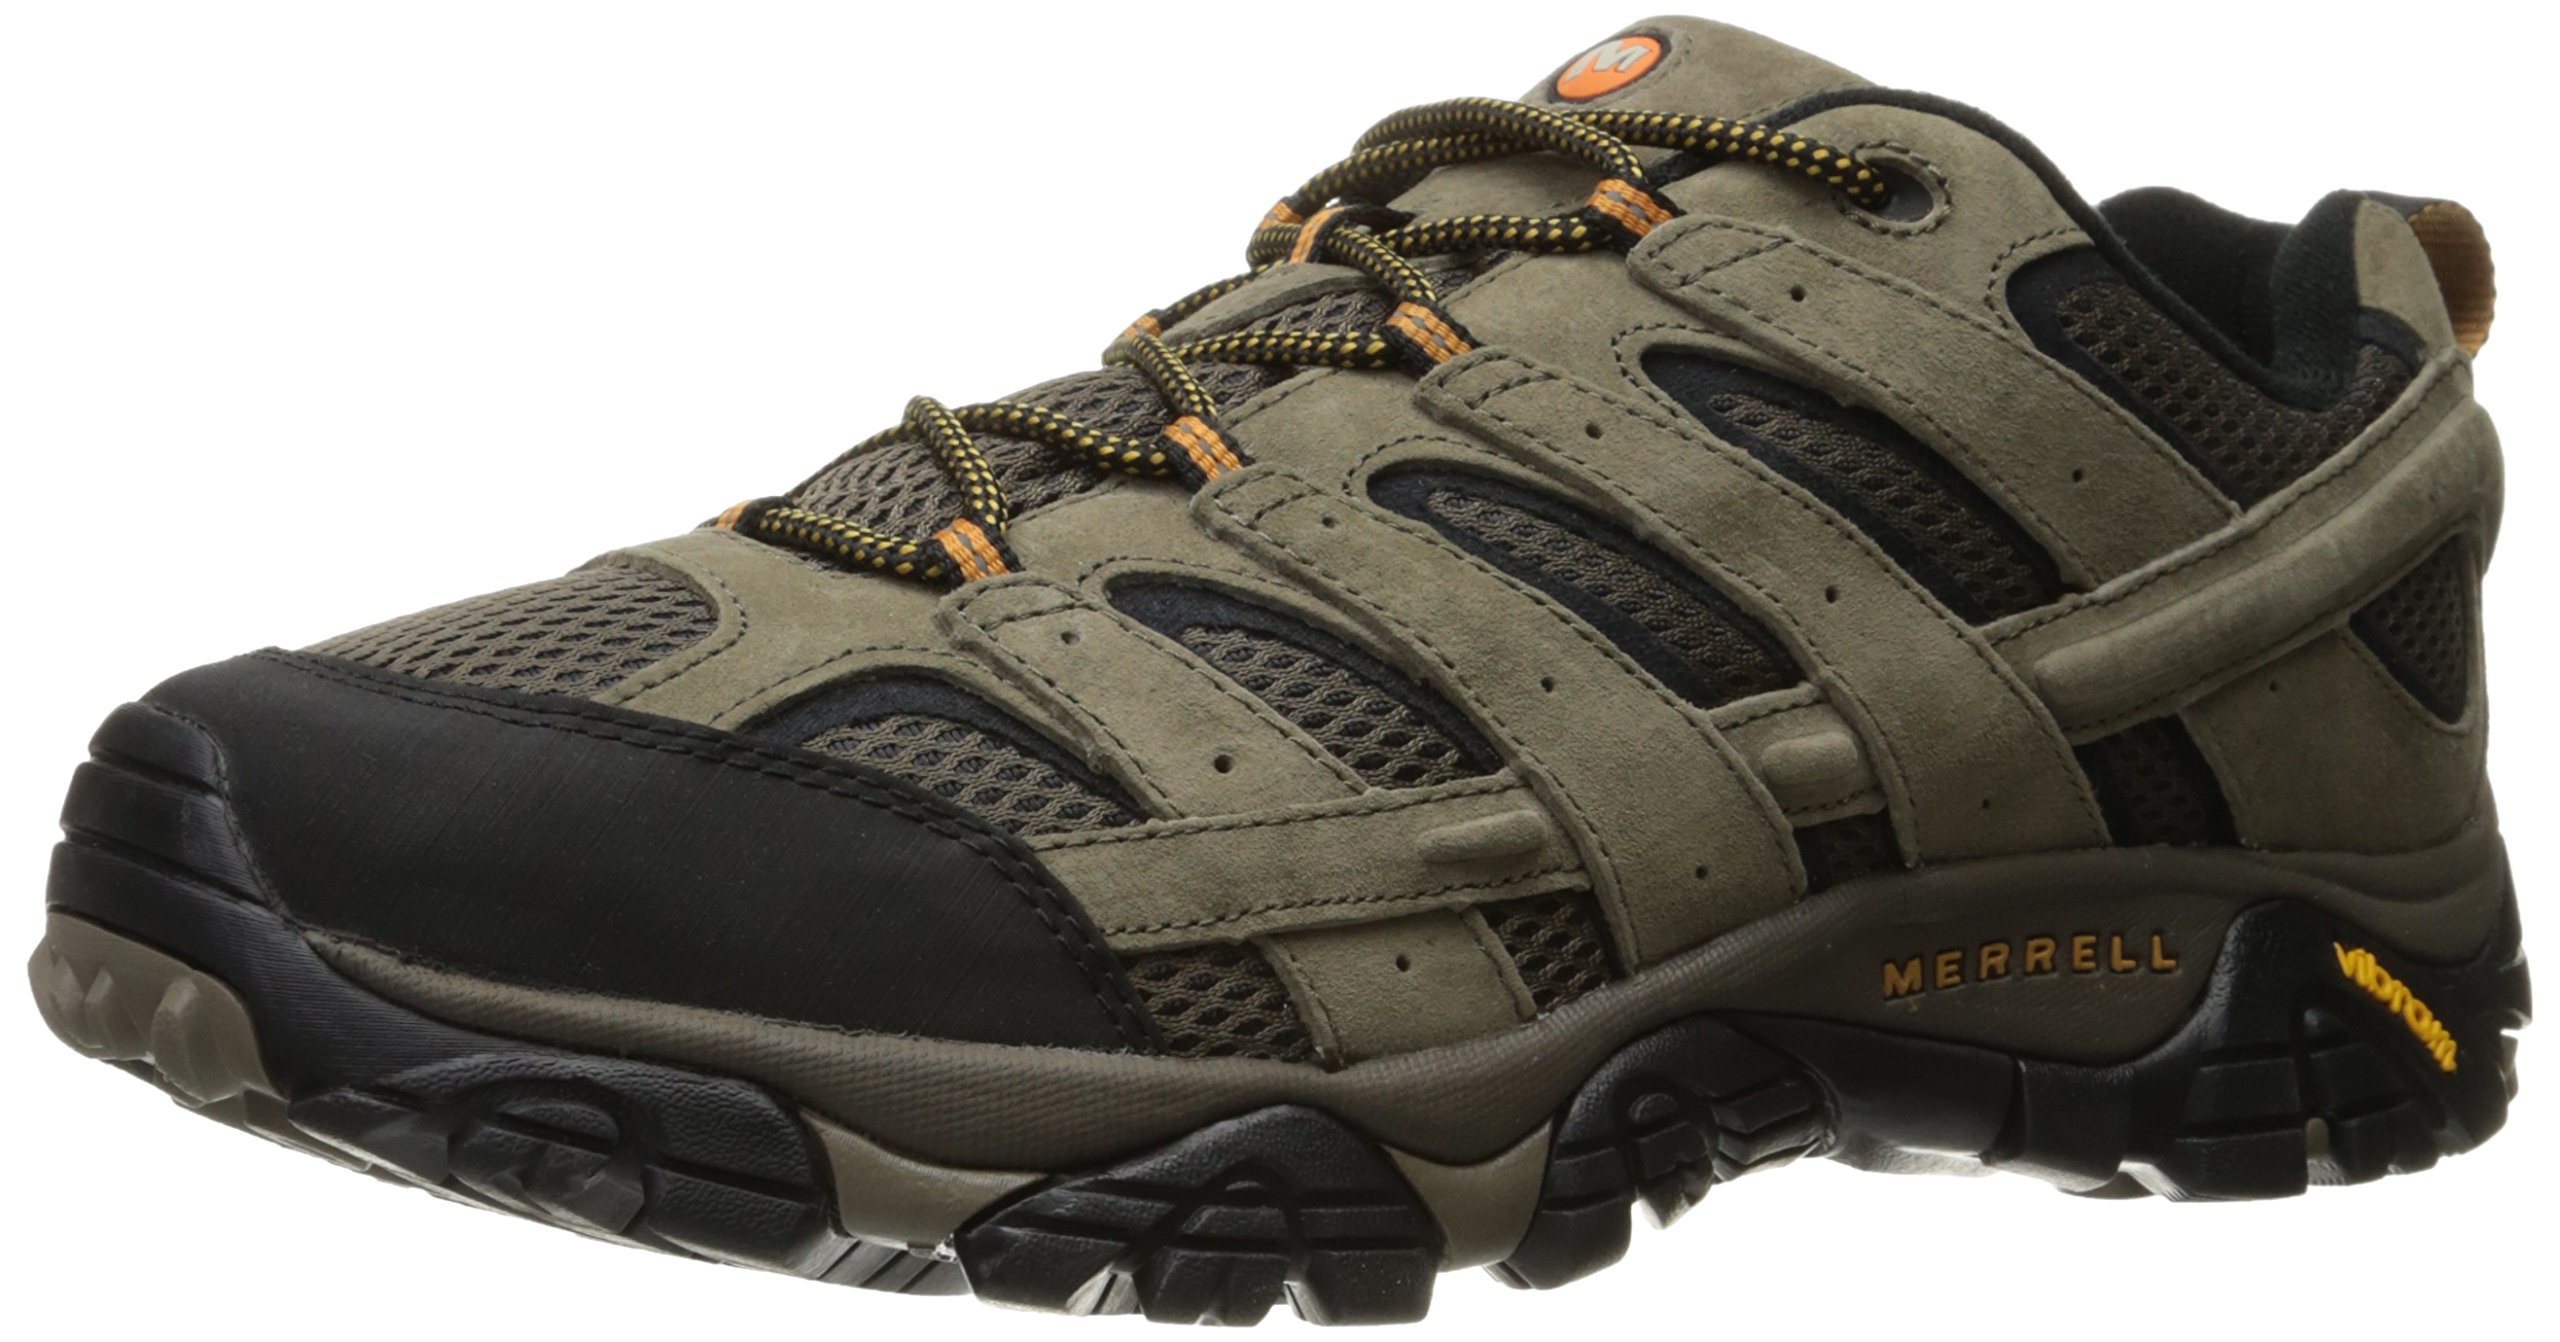 Merrell Men's Moab 2 Vent Hiking Shoe, Walnut, 10.5 M US by Merrell